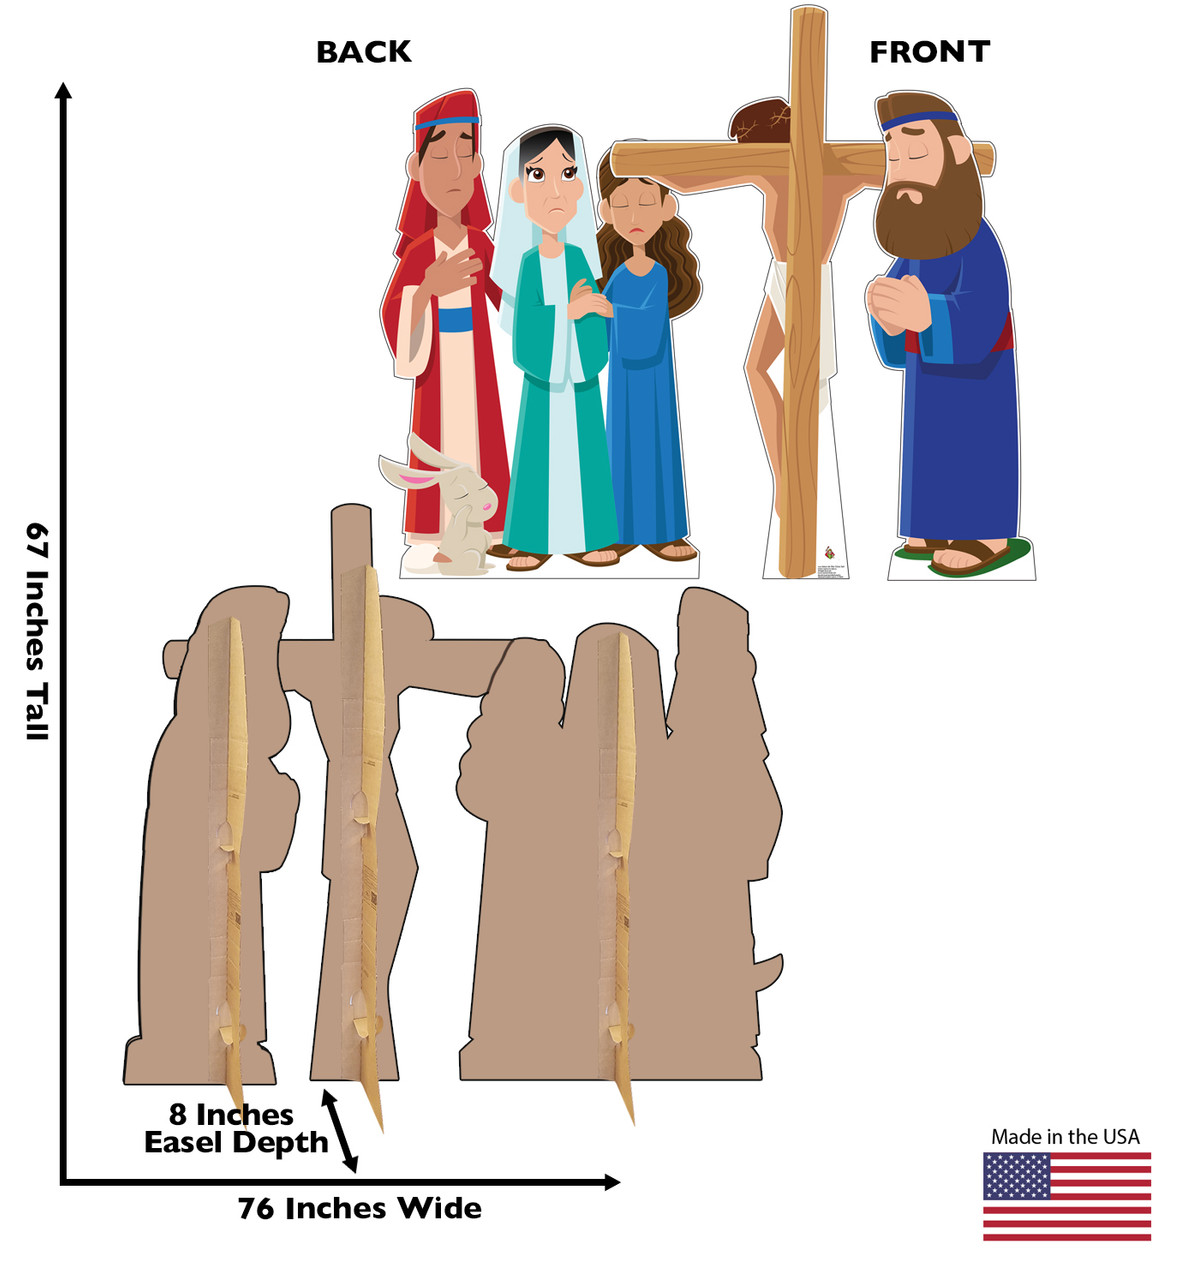 Life-size cardboard standee set of Jesus on the Cross with front and back dimensions.